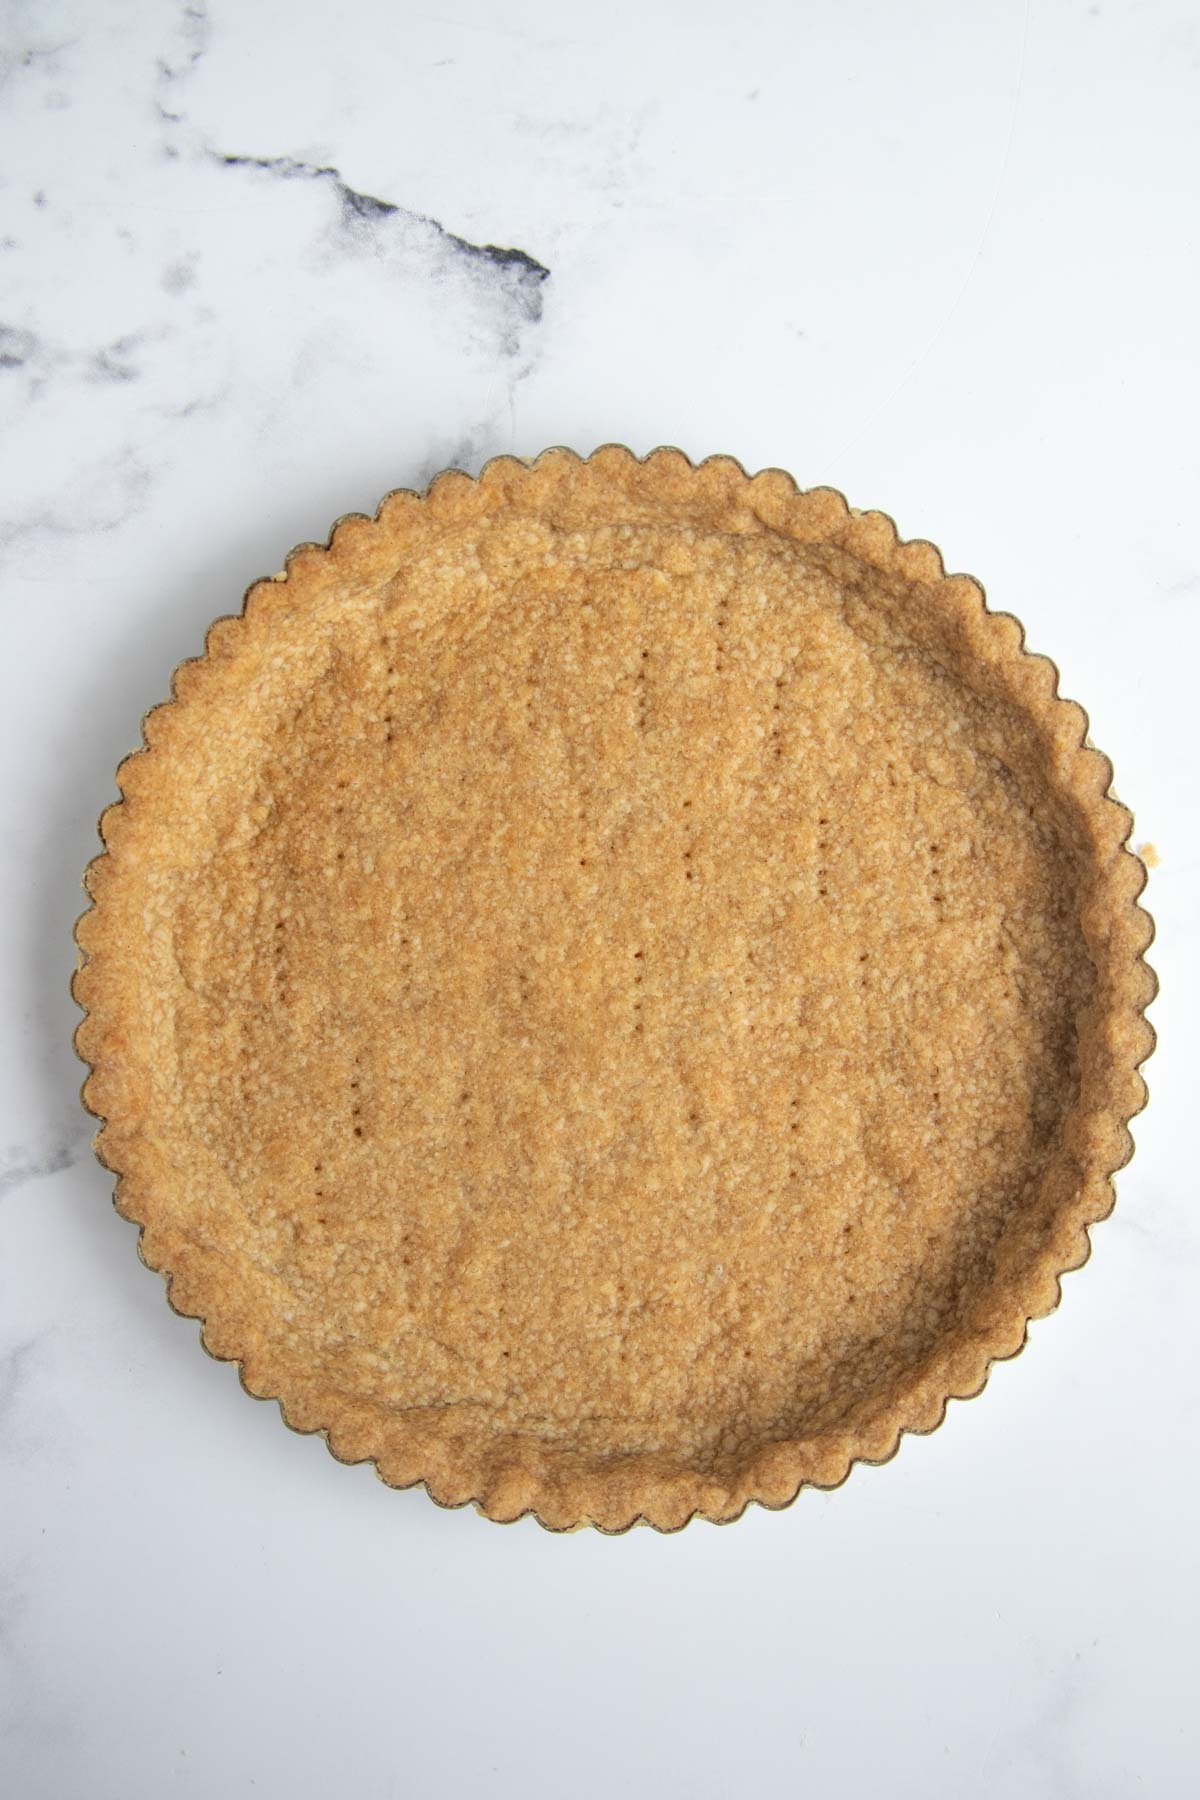 Fully baked tart crust